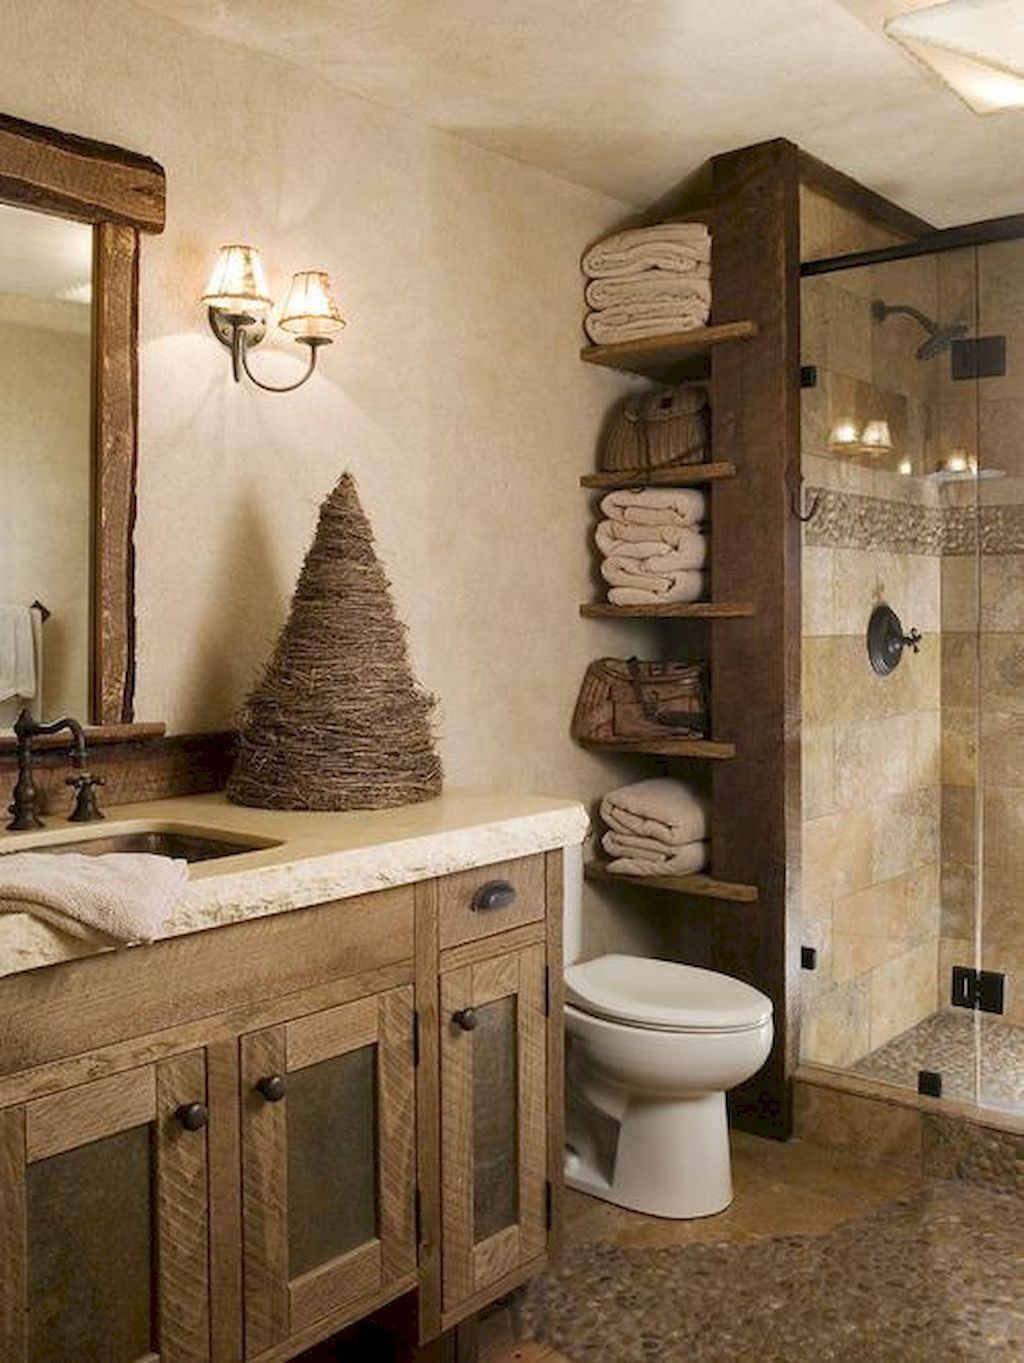 Unique Bathroom Shelving Units Are Perfect For Storing Towels Or Decor Will Keep Ev Rustic Bathroom Lighting Bathroom Remodel Master